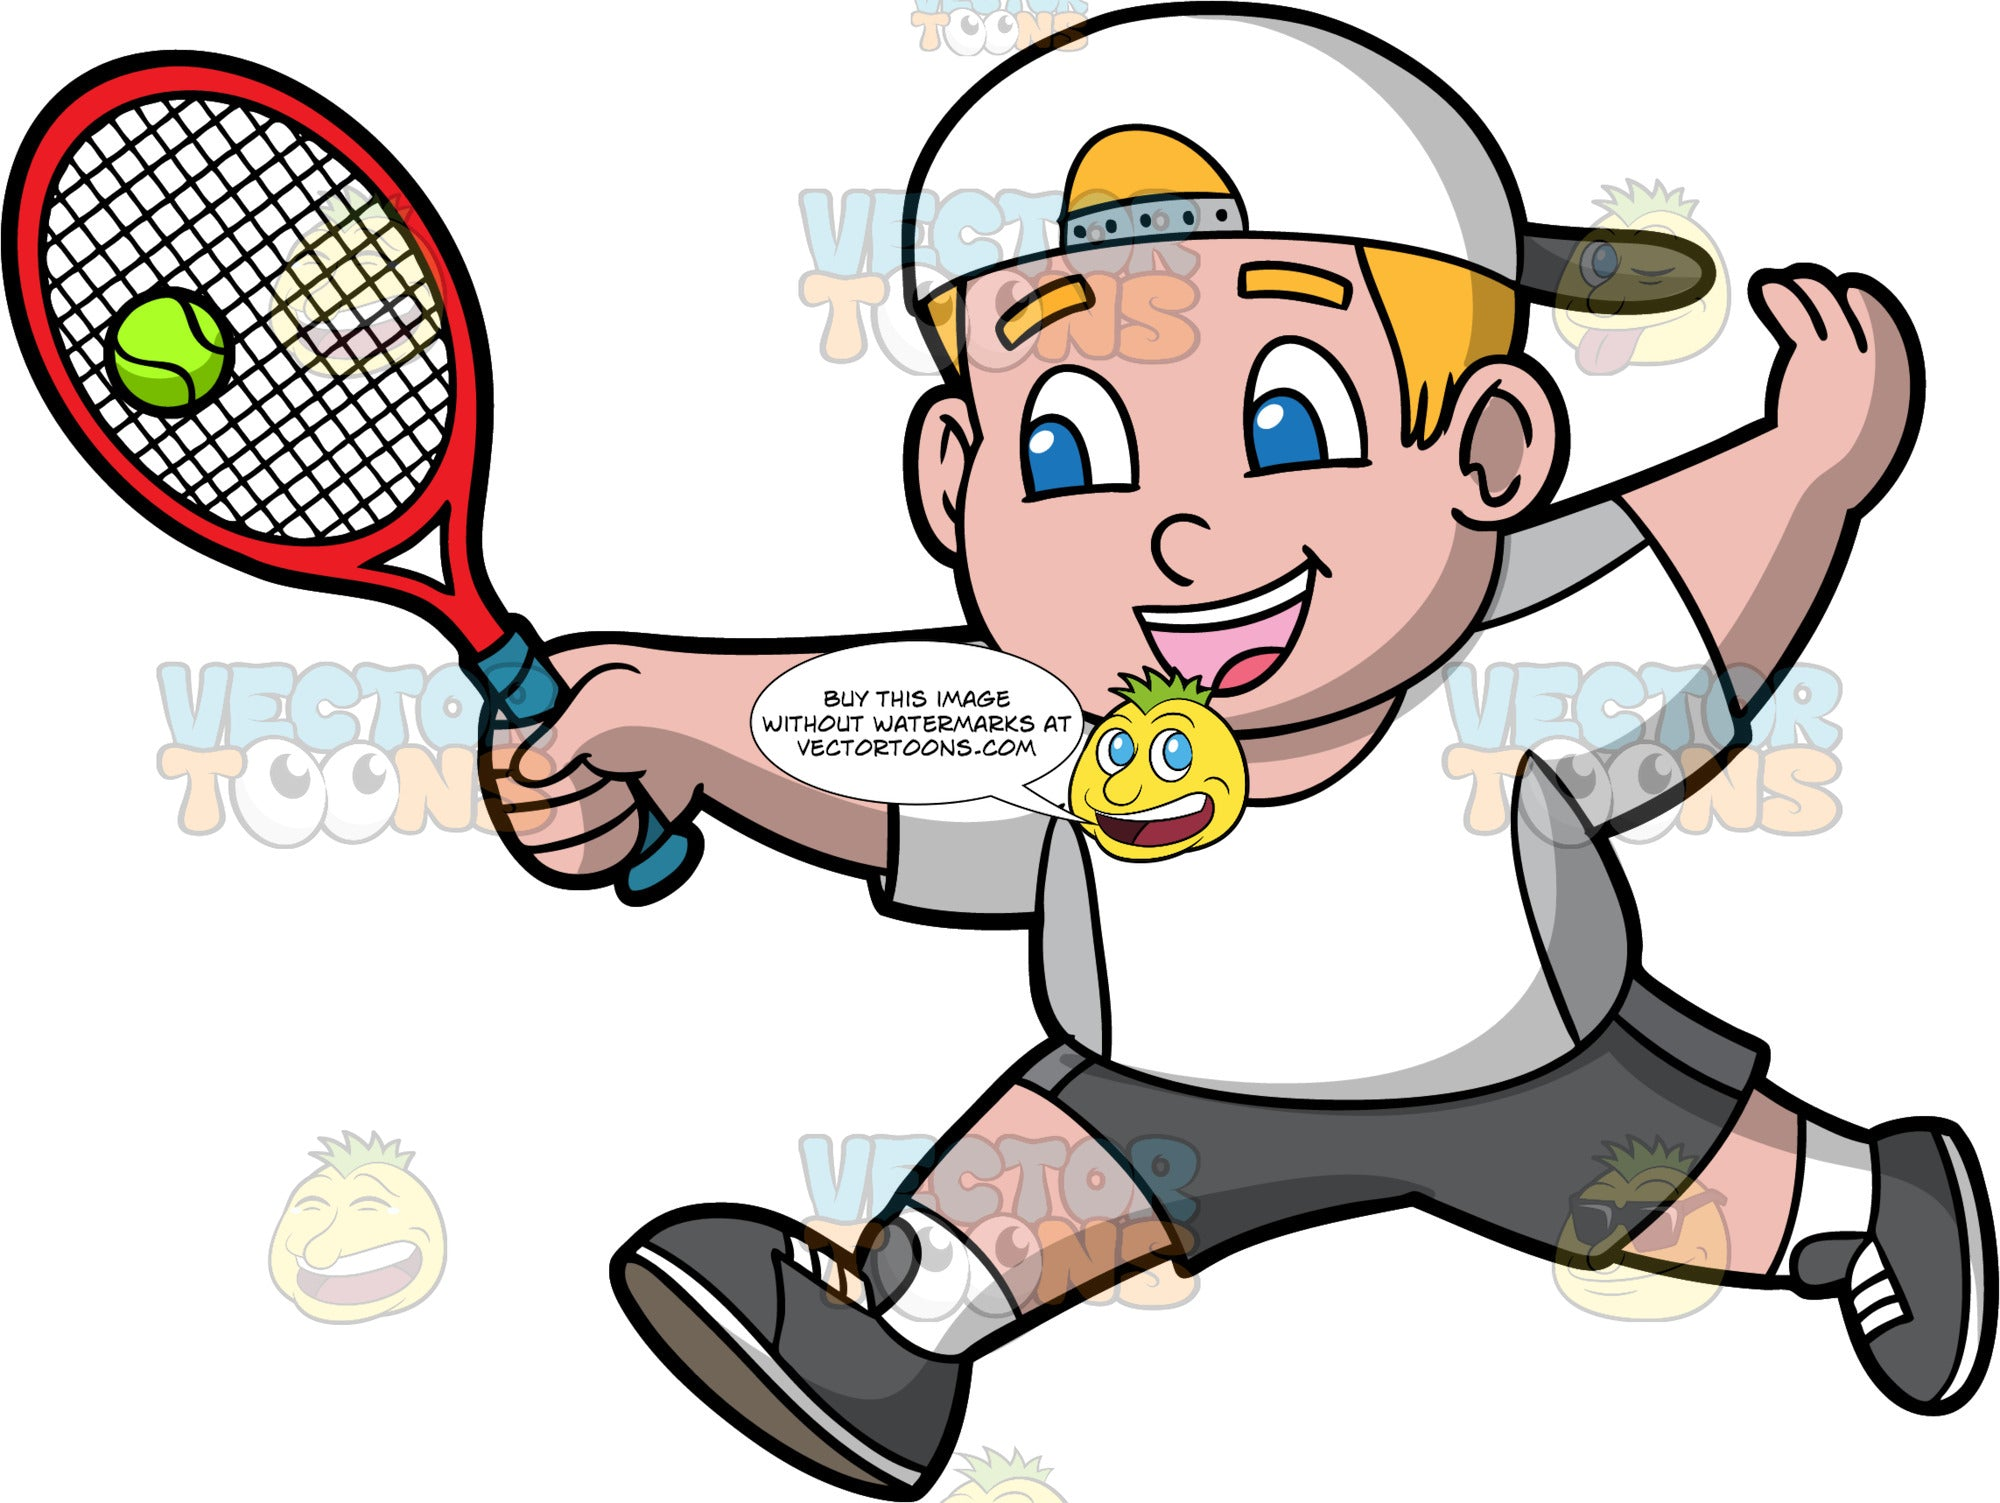 Young Sam Hitting A Tennis Ball. A young boy wearing dark gray shorts, a white with gray shirt, white socks, dark gray running shoes, and a white baseball hat worn backwards, reaches his arm out and hits a ball with the tennis racquet in his hand